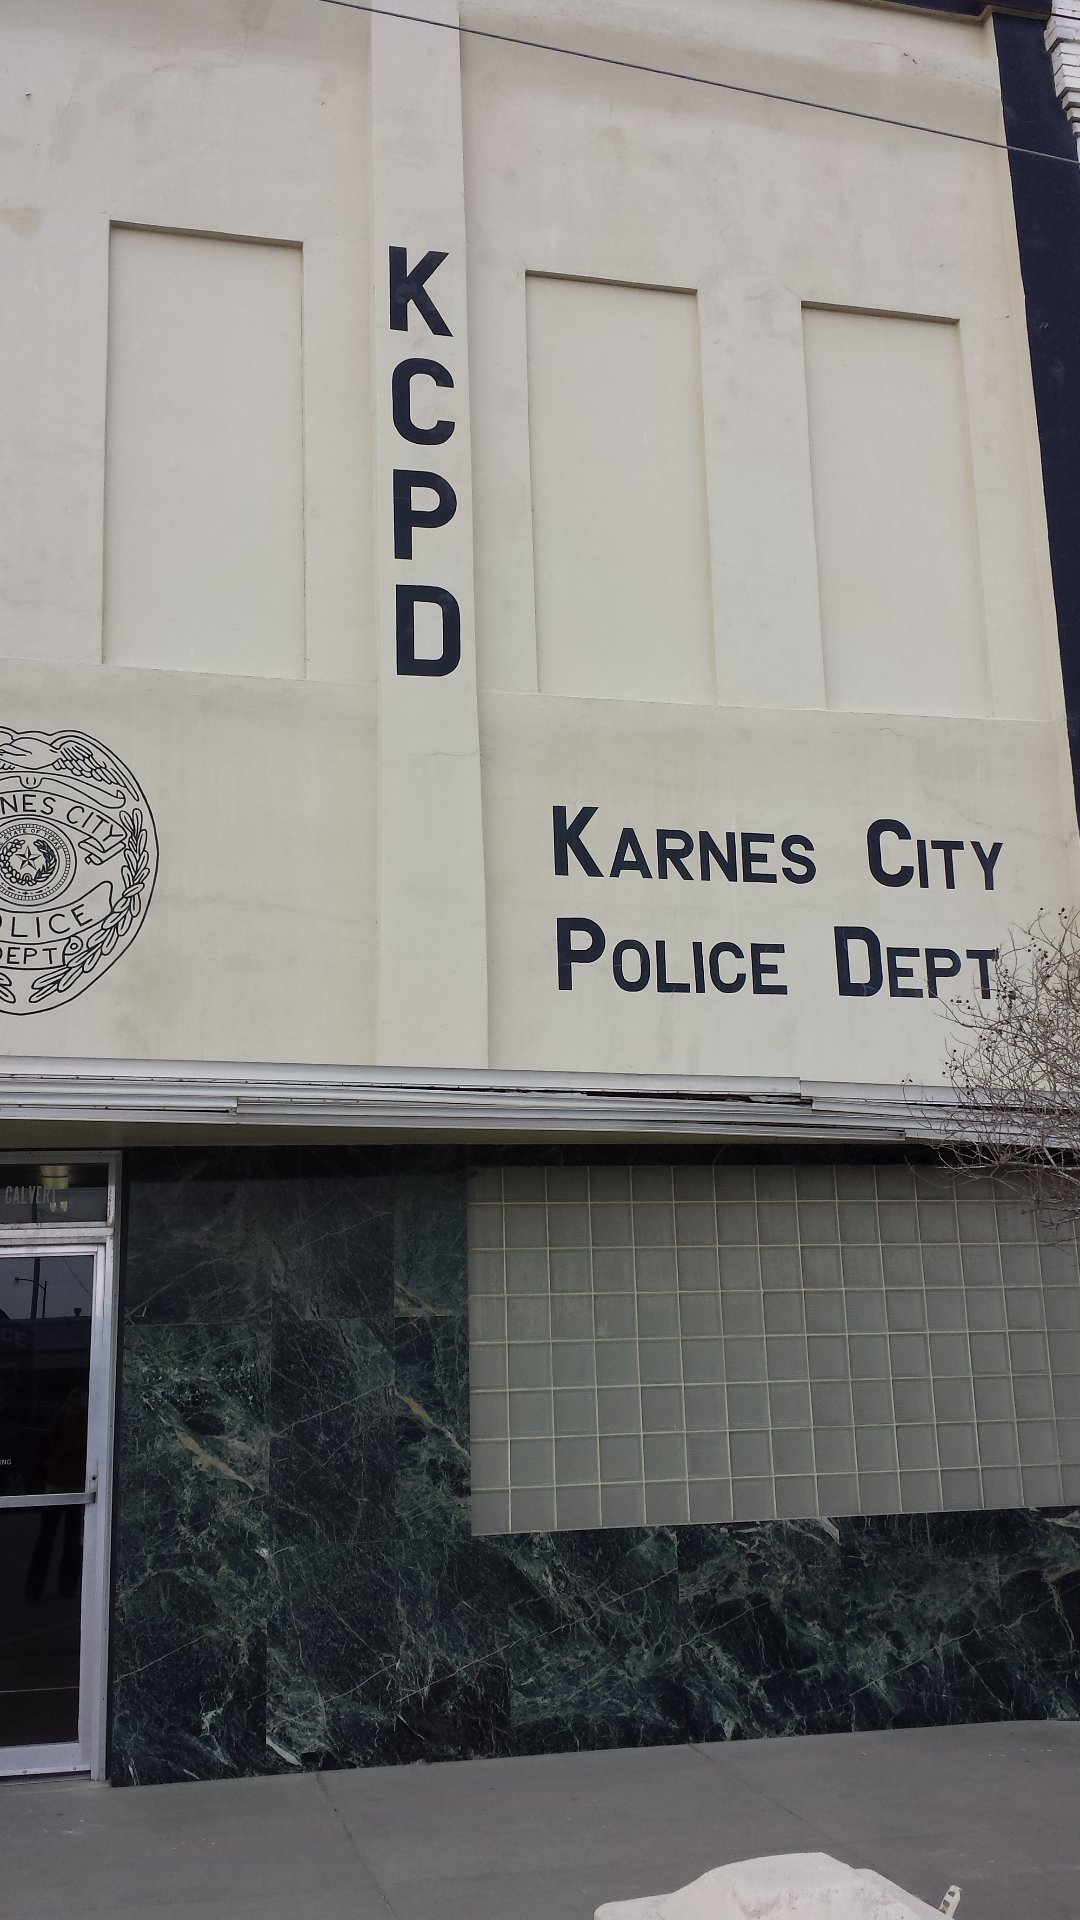 Karnes City Police Department 211 E. Calvert Ave. Karnes City, TX 78118 830 780-2300  (non-emergency)